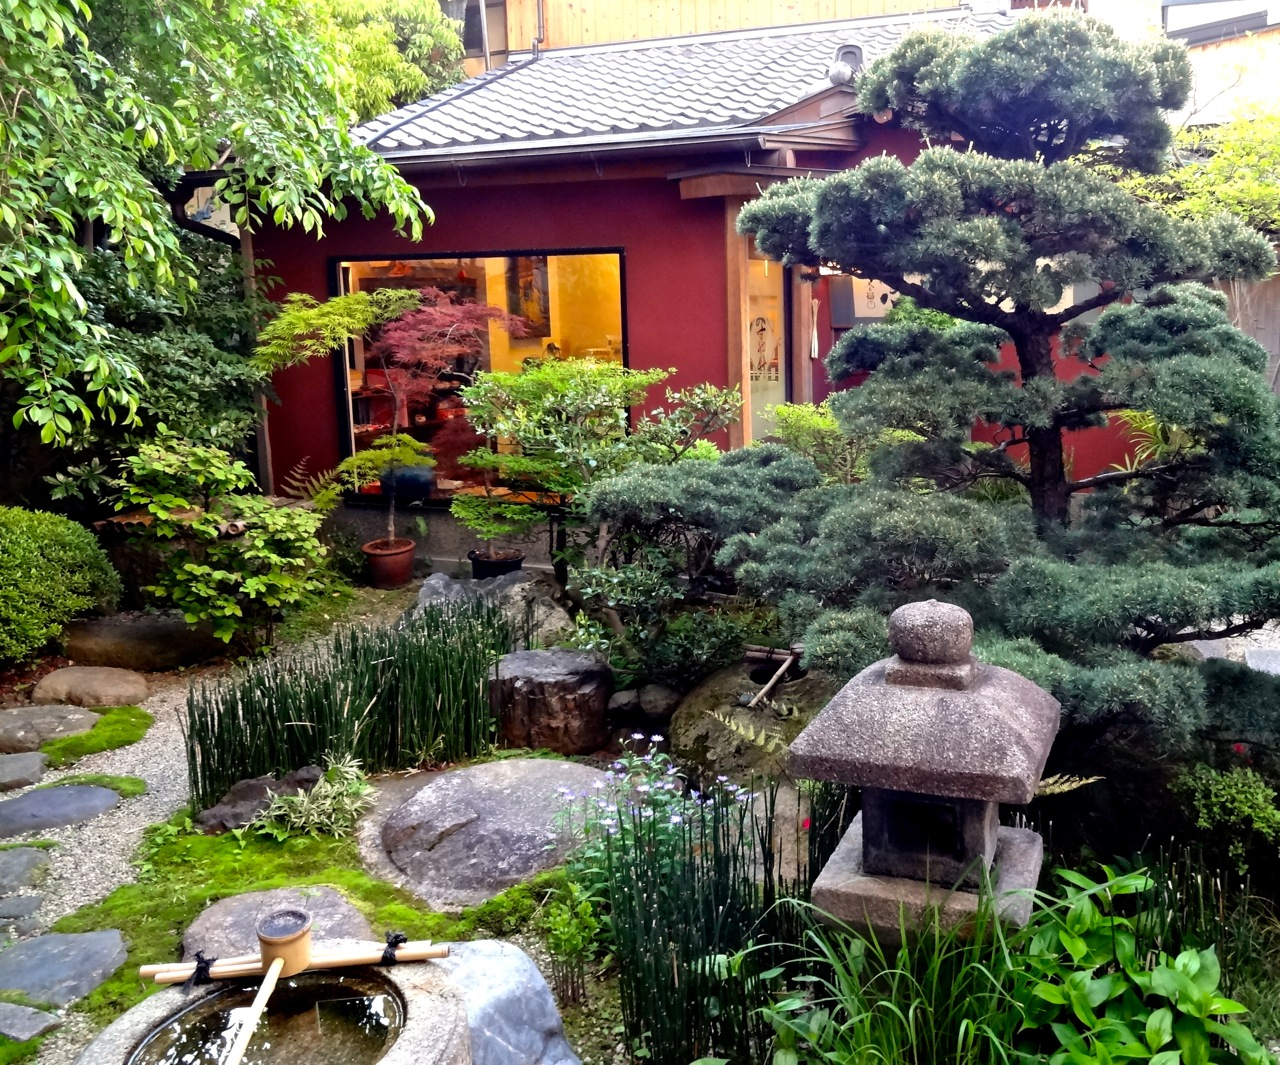 The art of the zen garden travel the world over for Building a japanese garden in your backyard